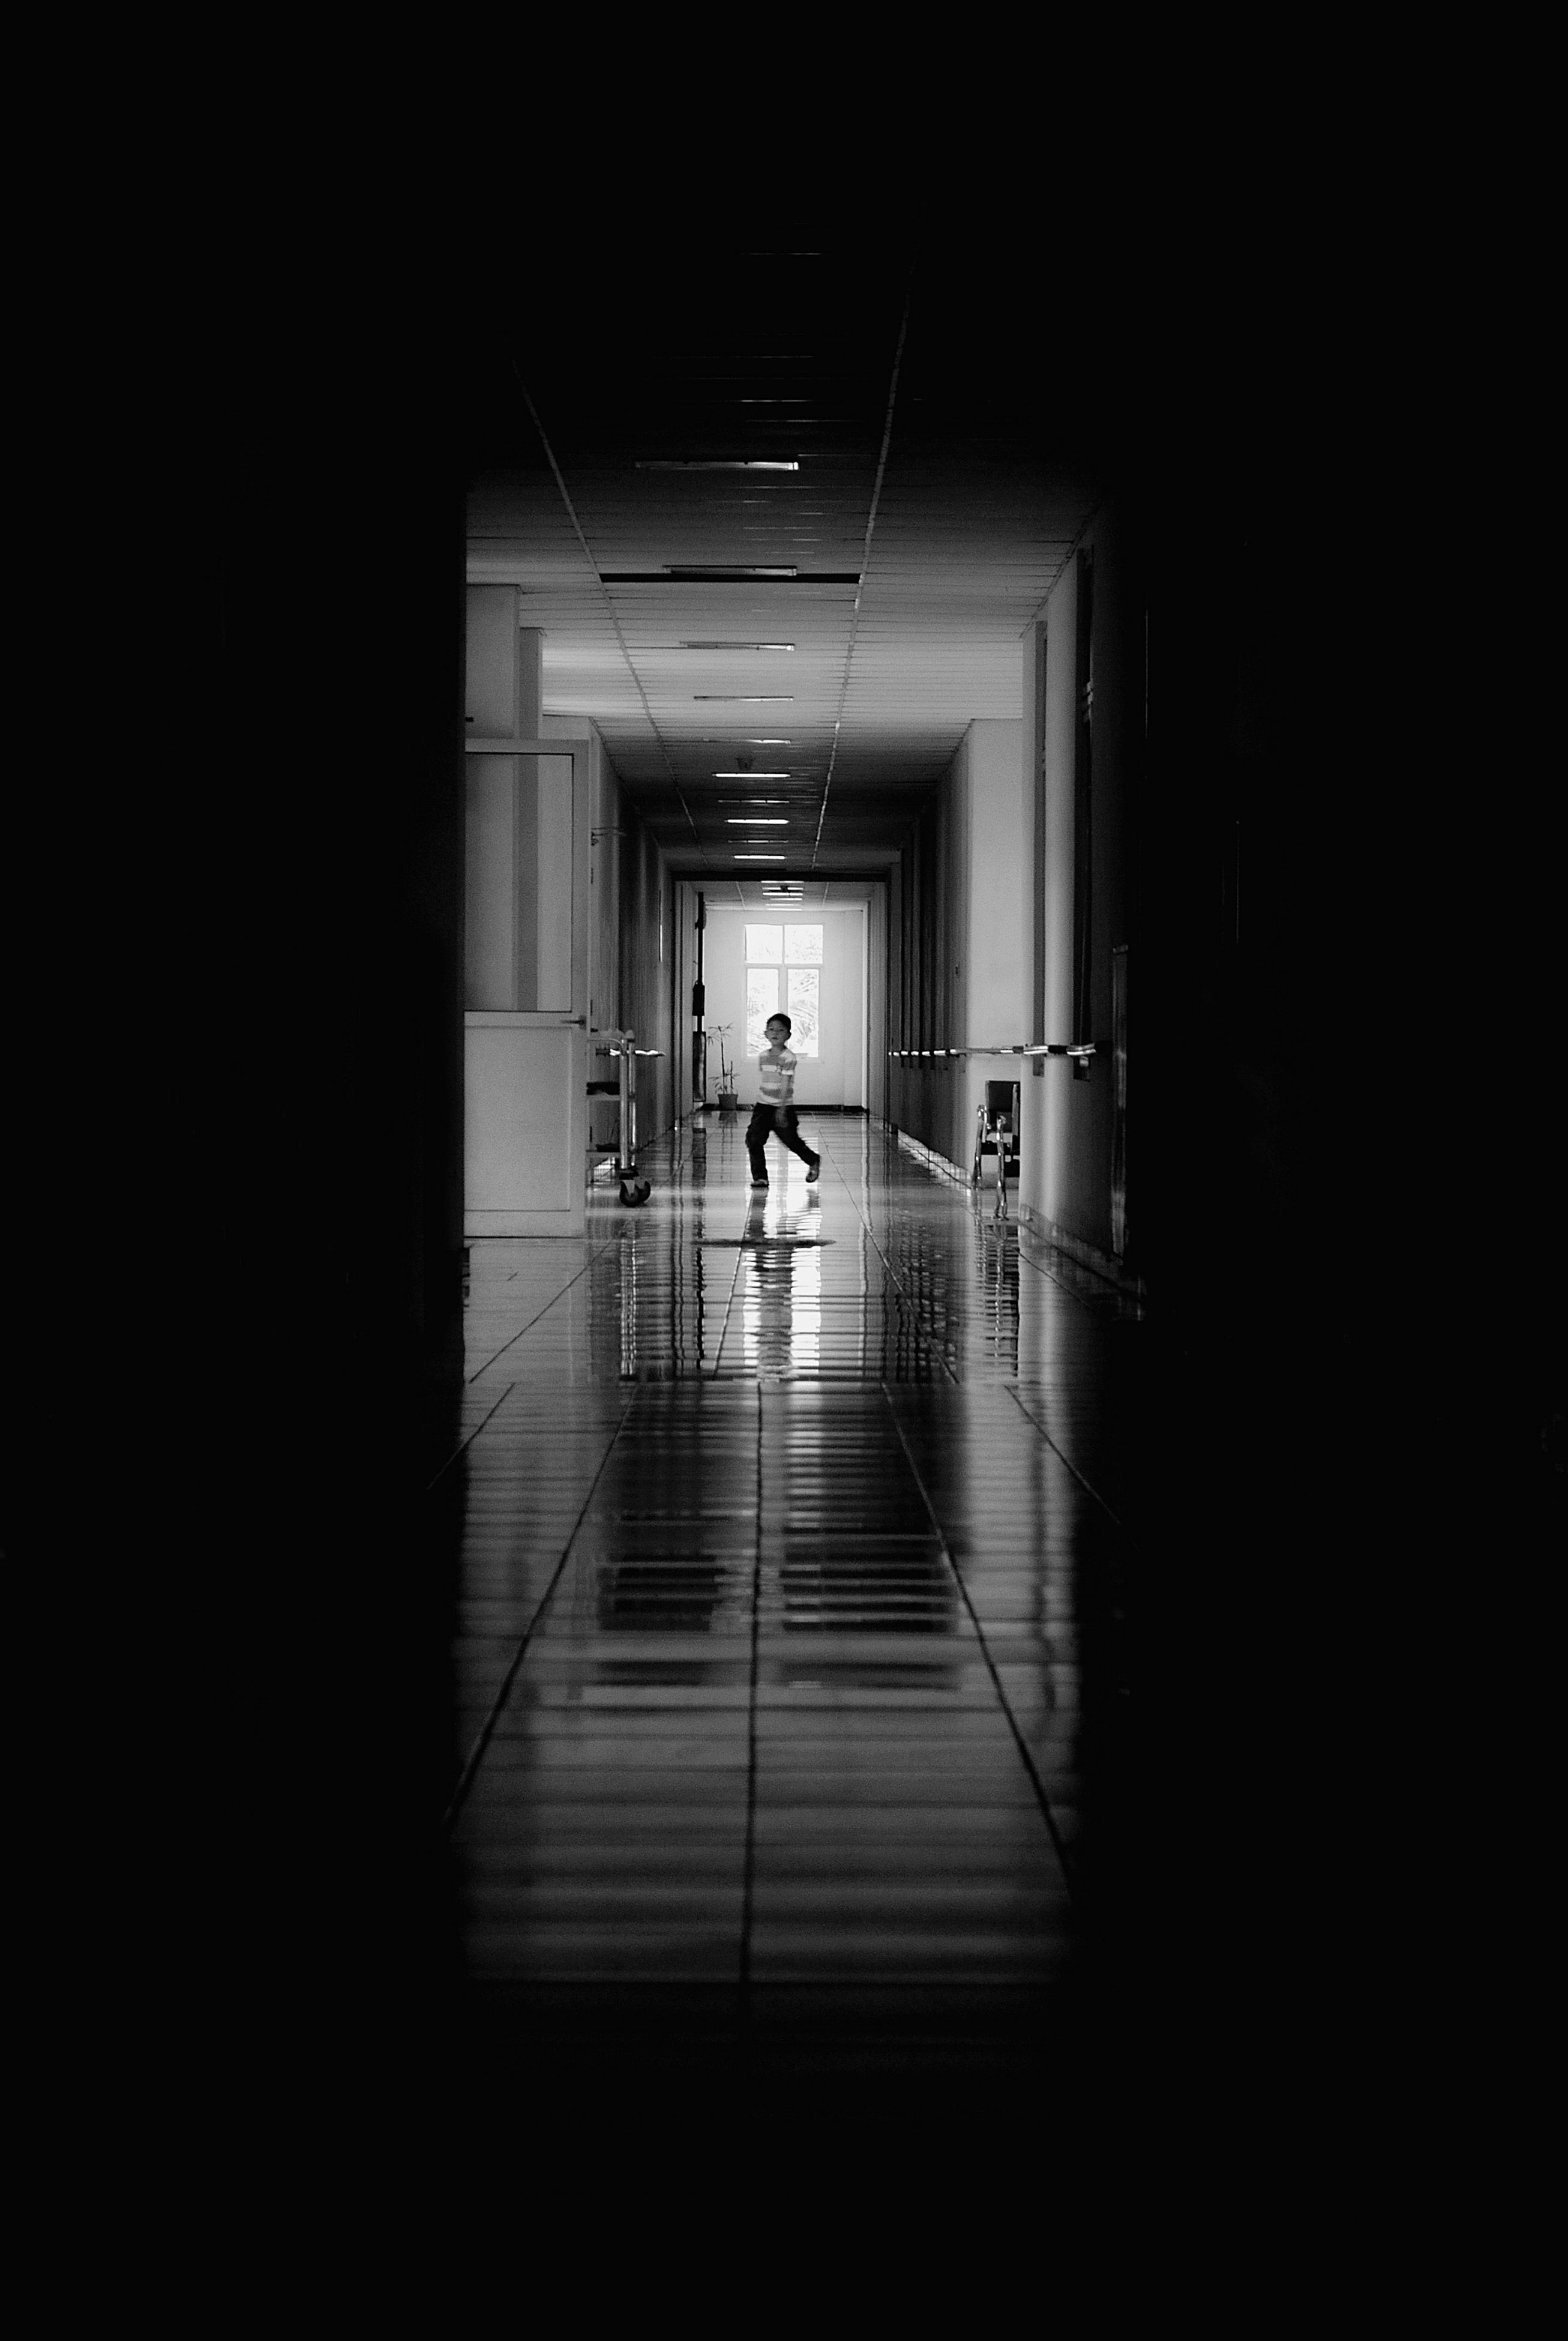 indoors, walking, men, full length, lifestyles, corridor, the way forward, architecture, dark, silhouette, built structure, rear view, tunnel, wall - building feature, person, illuminated, leisure activity